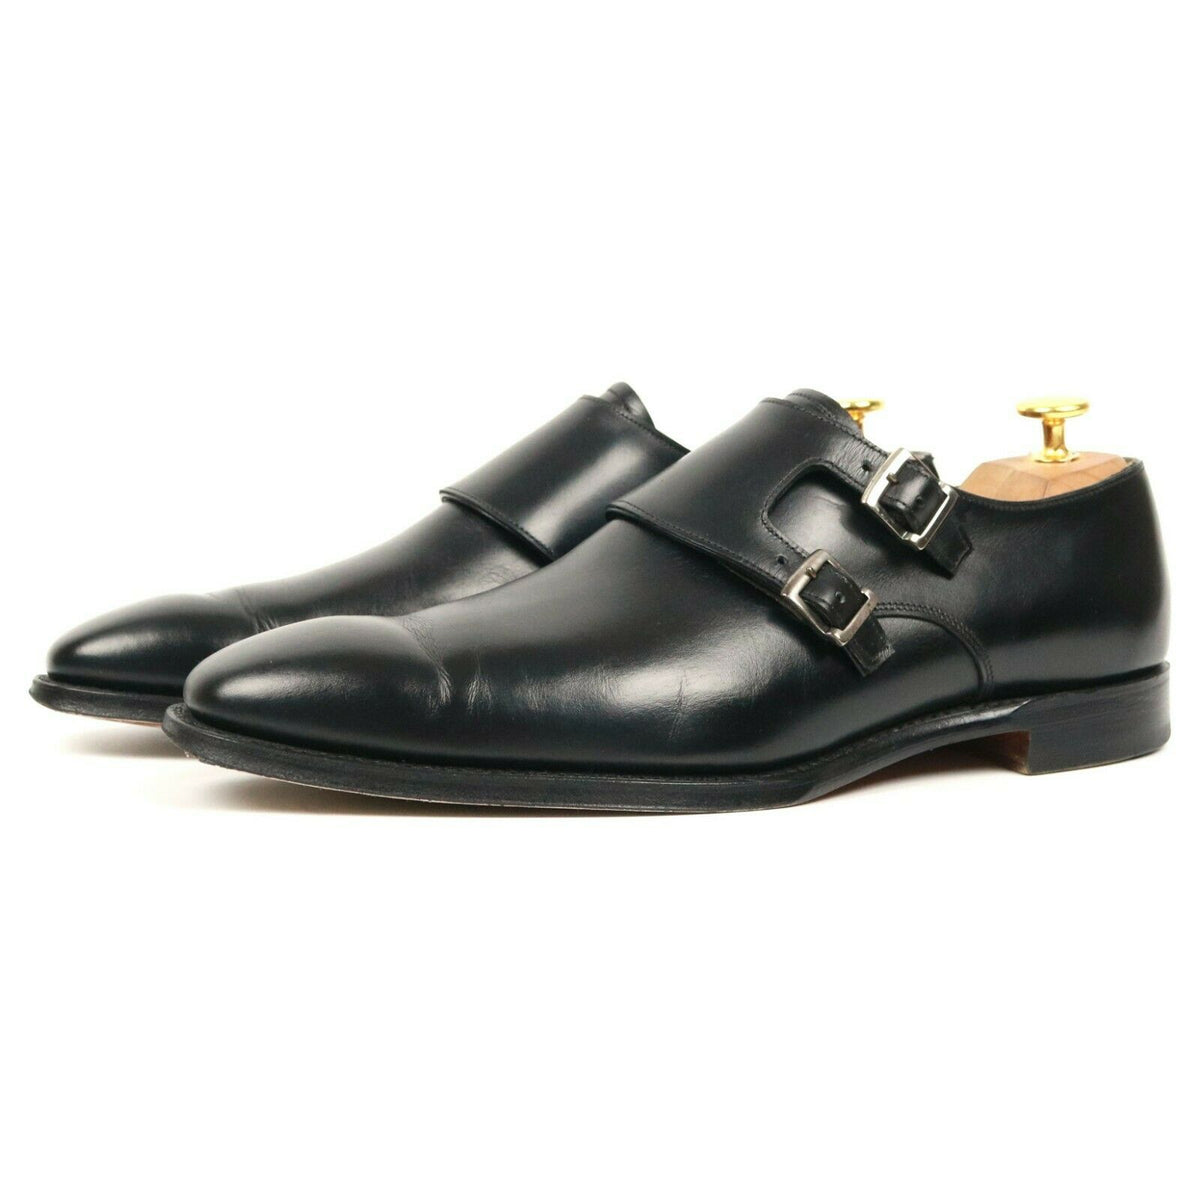 Cheaney 'Ladbroke' Black Leather Double Monk Strap UK 7 F